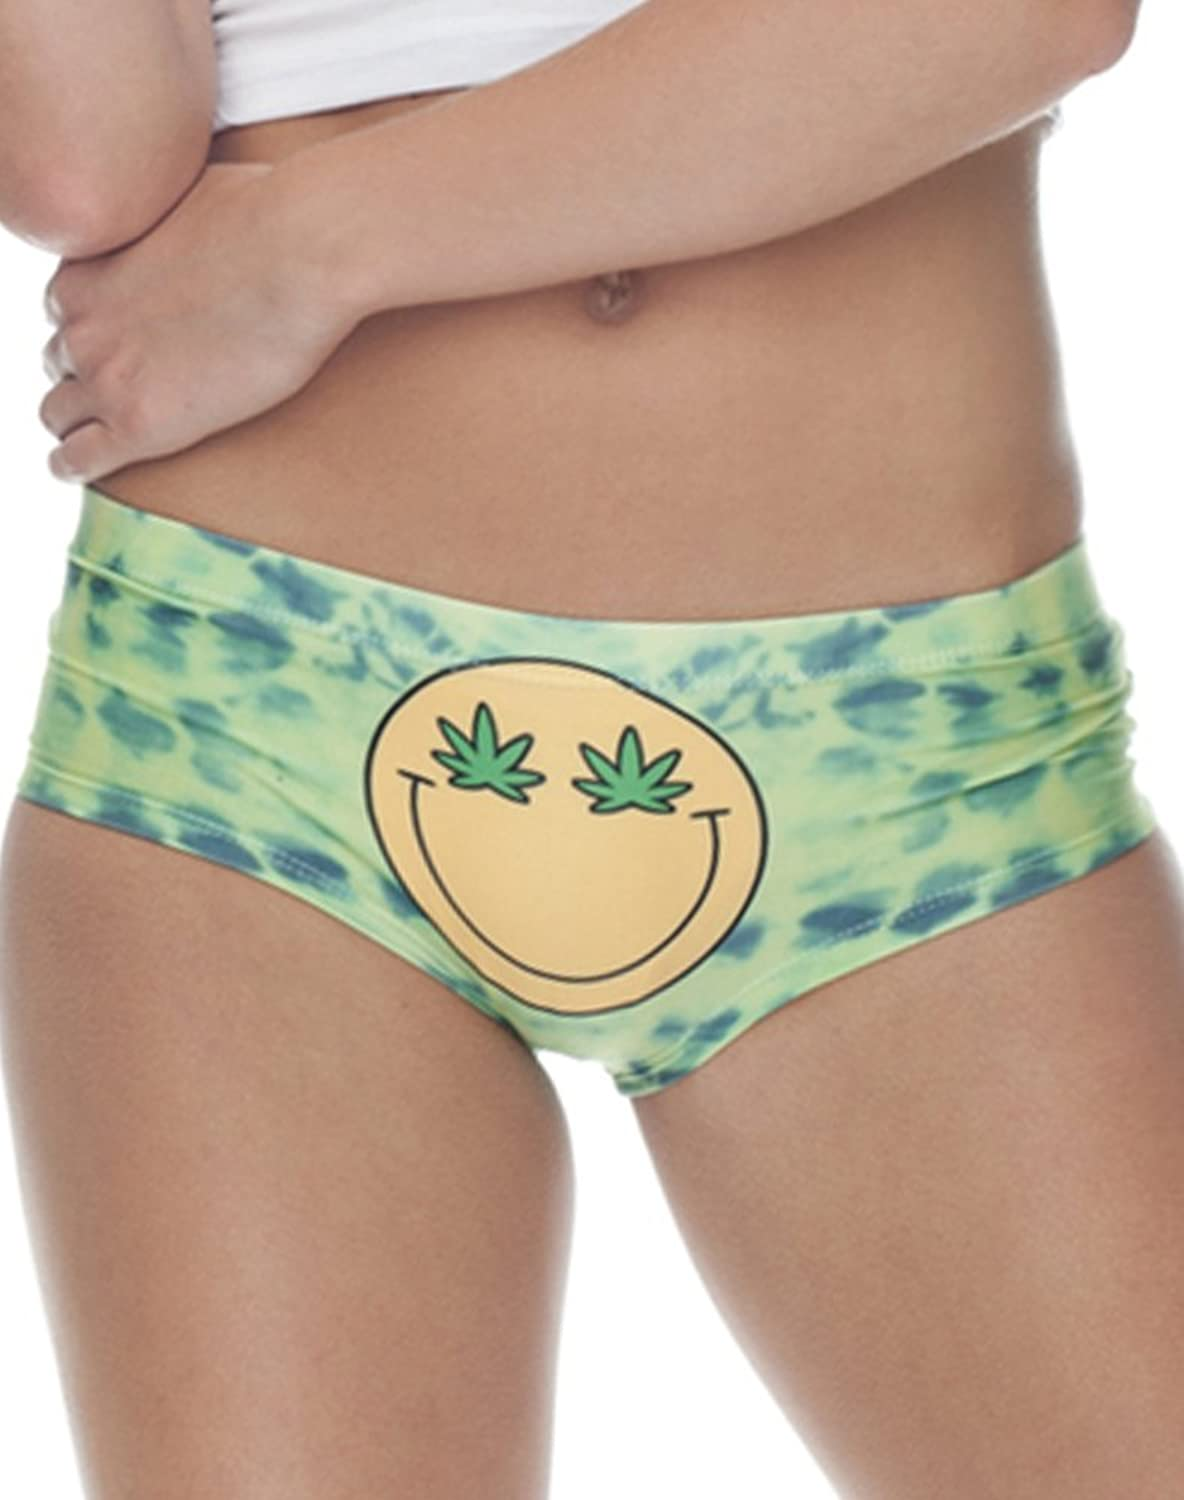 3fda419a1e26 UNIQUE FASHION UNDERWEAR: Fashion panties for women made with high end 3D  Print technology designed with humor for women of all ages and  personalities.